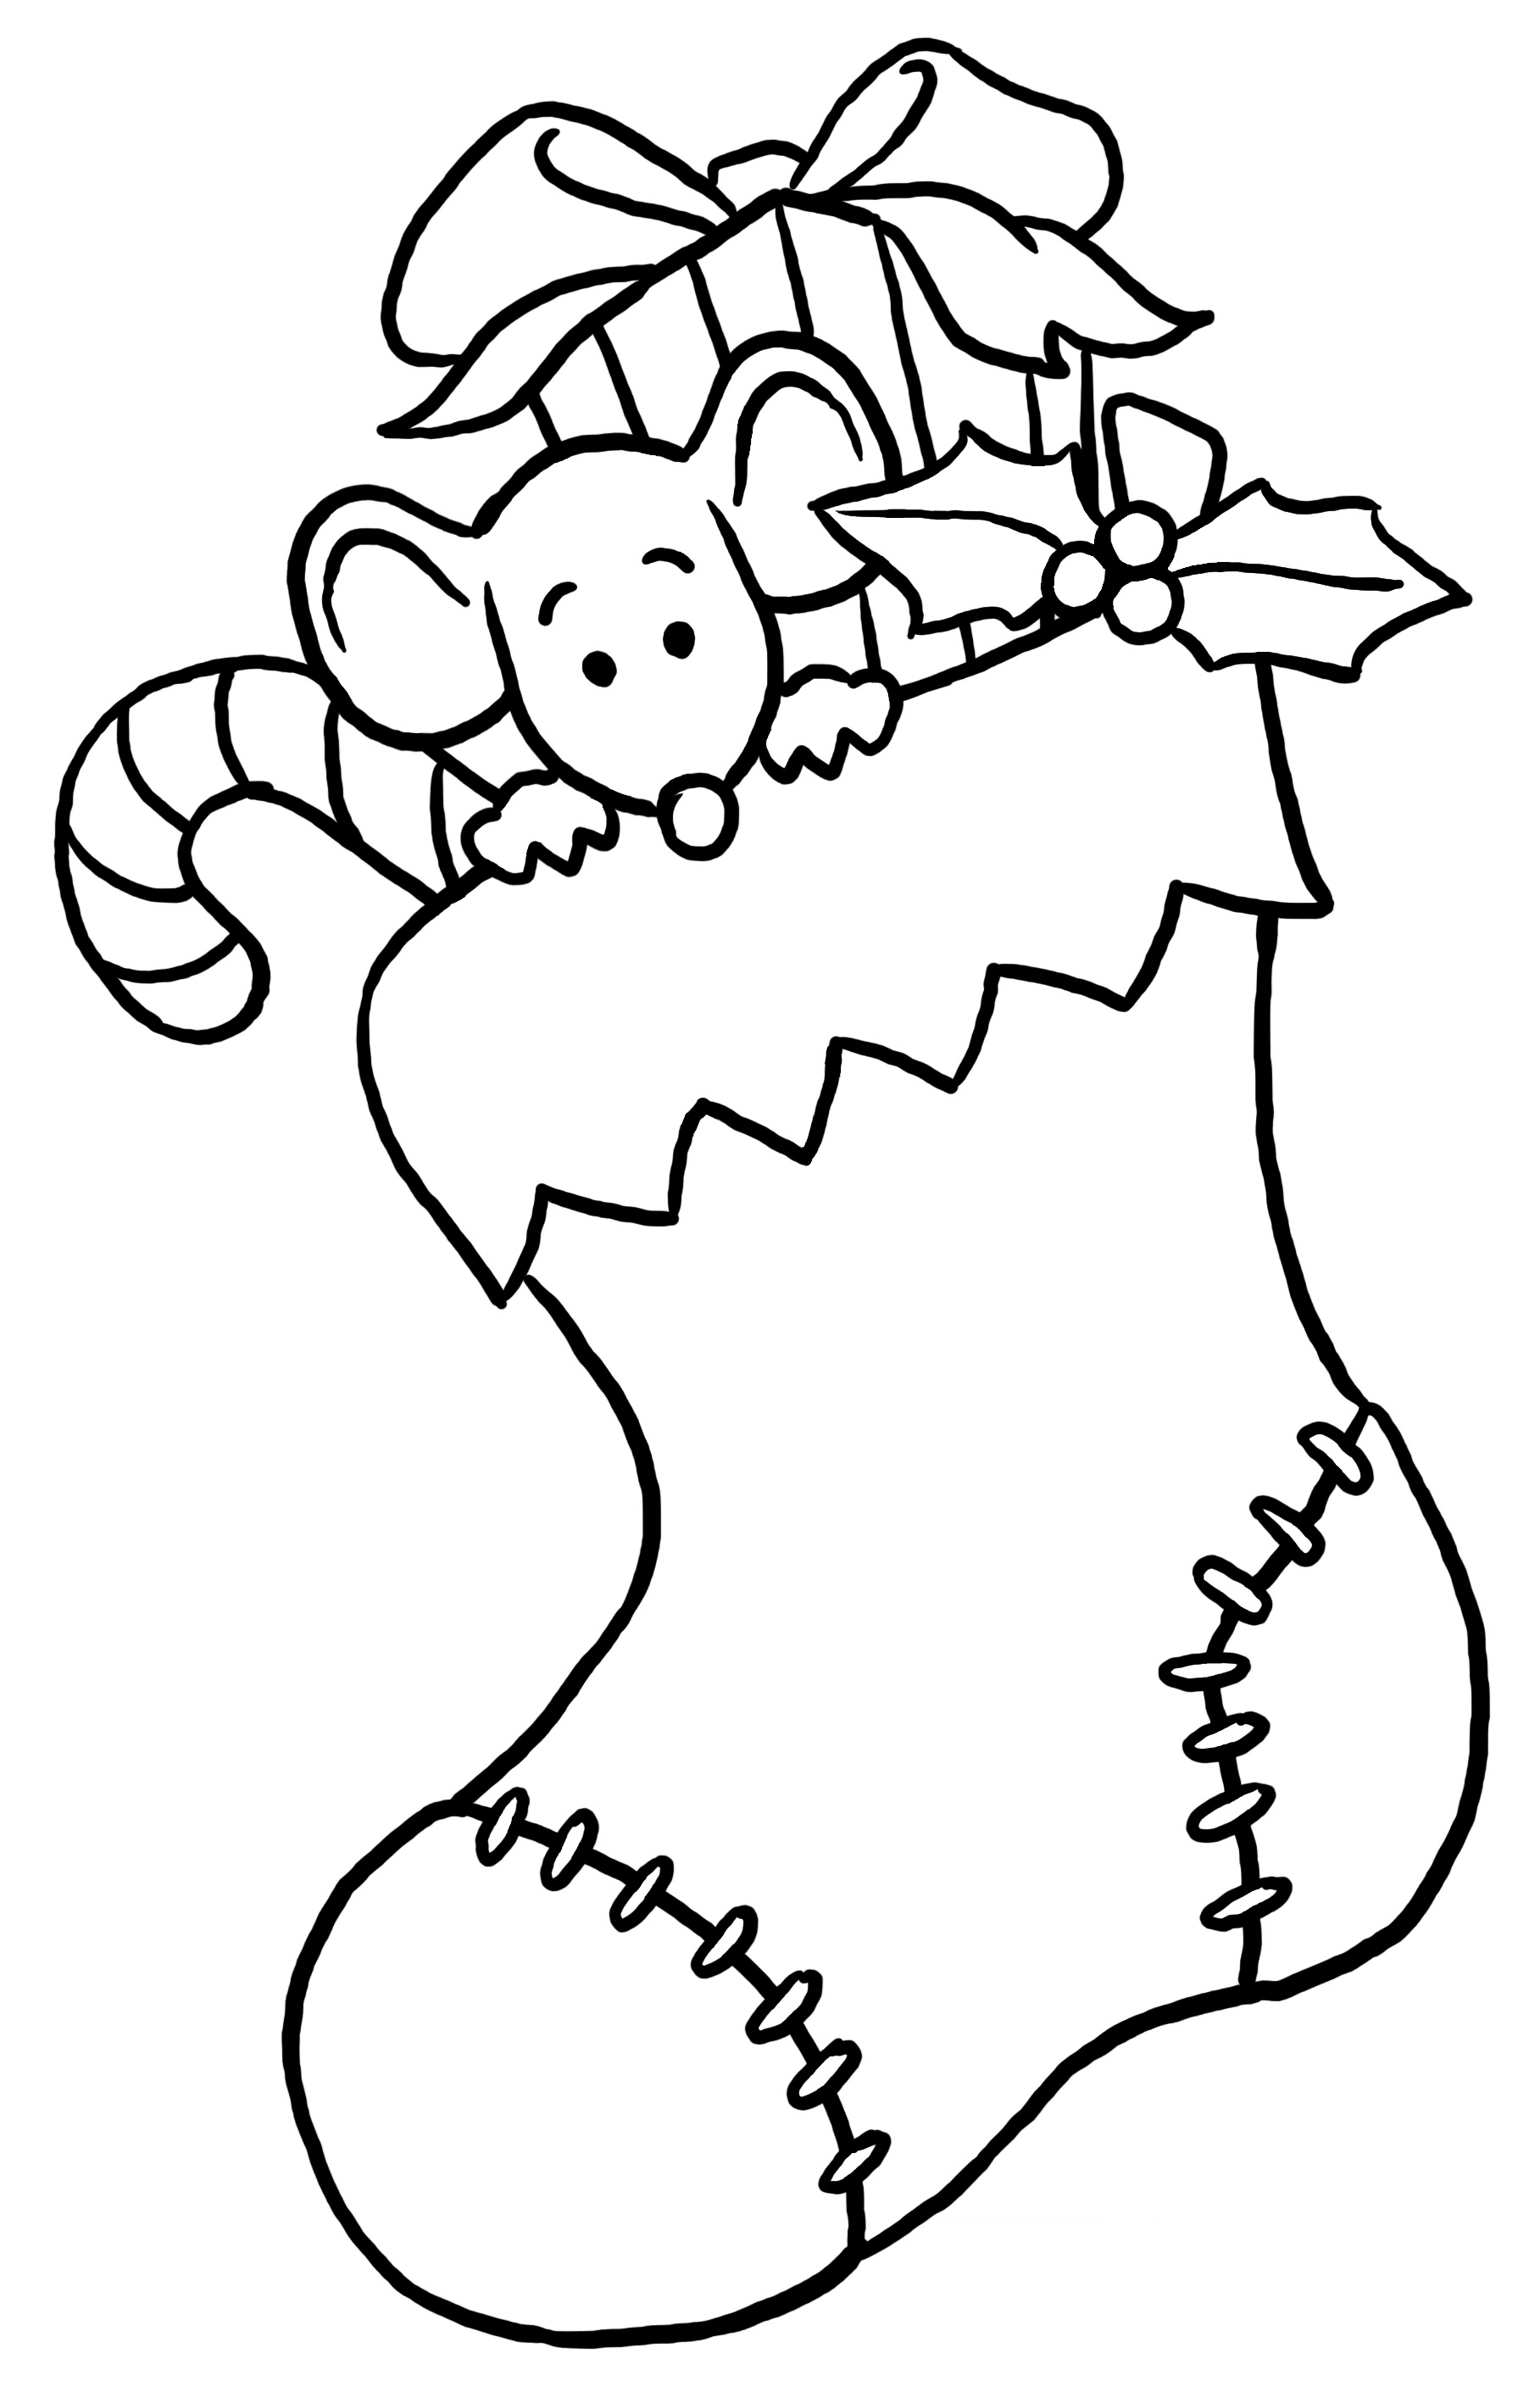 christmas coloring pages for pre k - Google Search | Christmas pre k ...